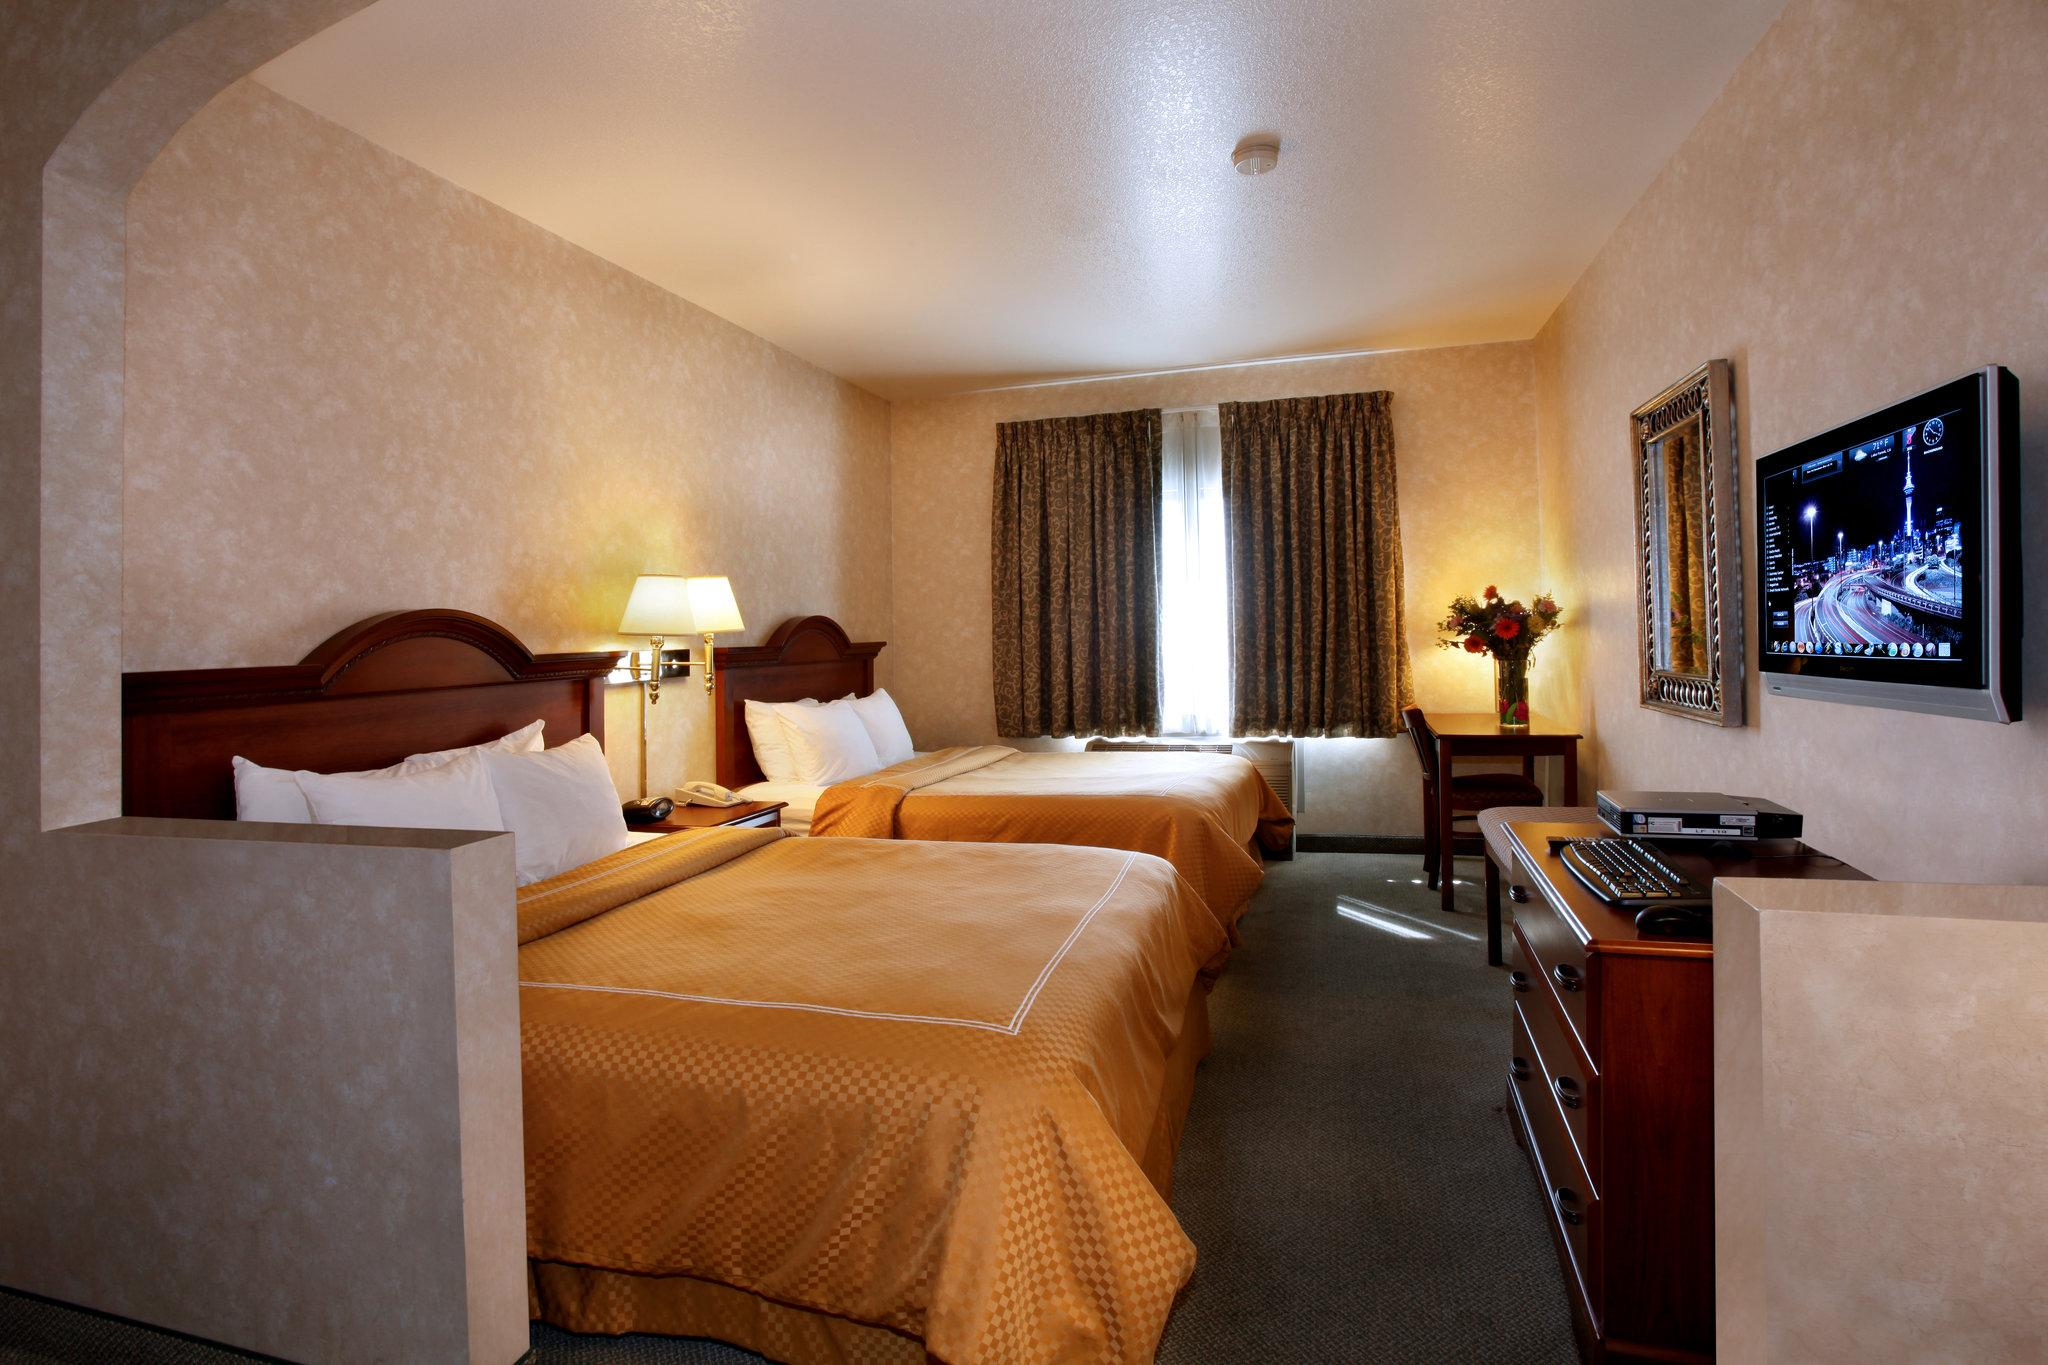 Prominence Hotel & Suites